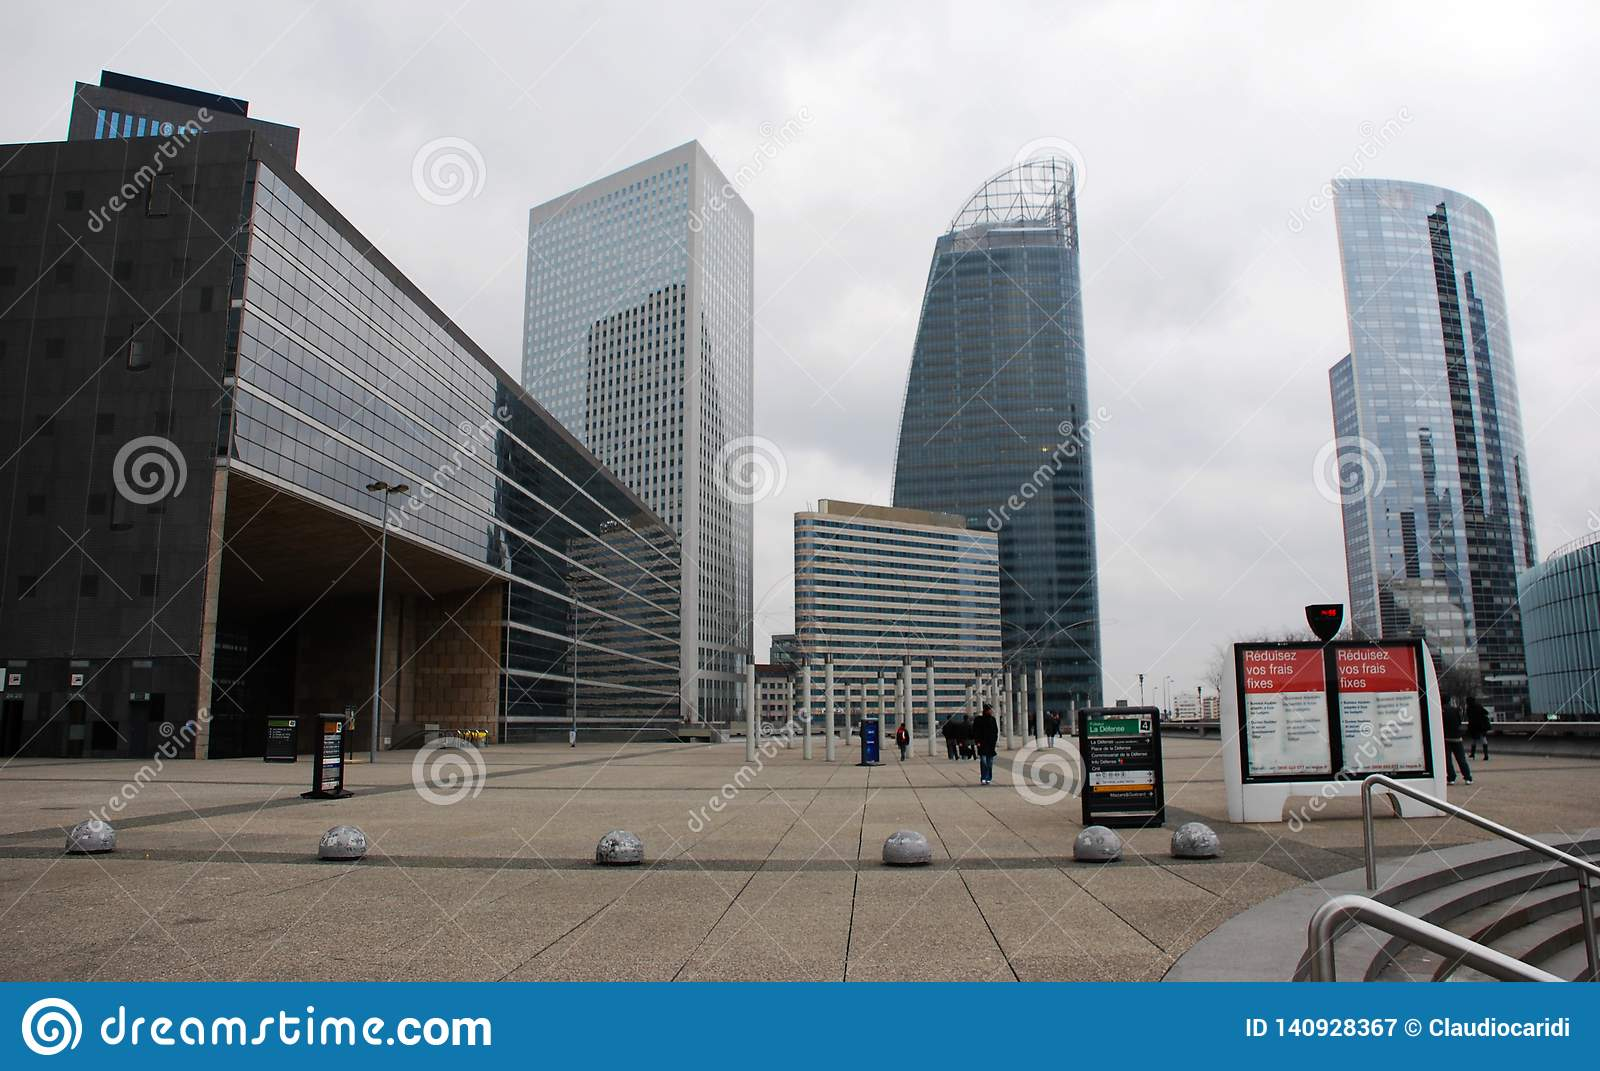 Vue de panorama de la défense, district des affaires à Paris, France